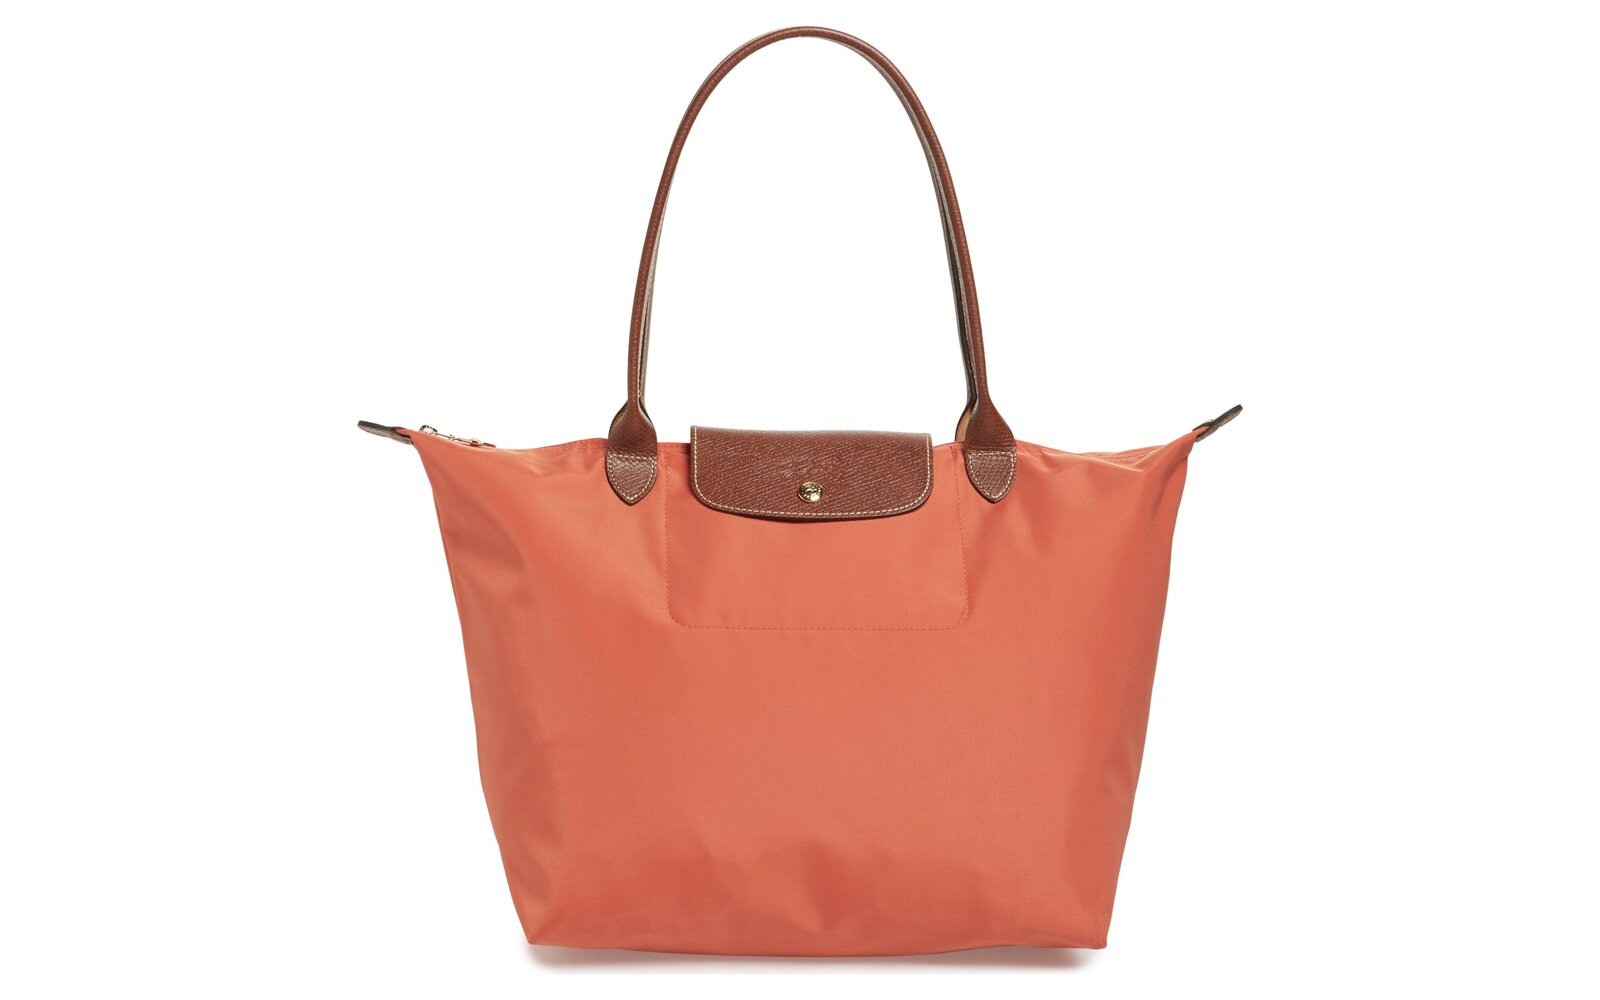 b49e00305521 Longchamp s Best Travel Bags Are Majorly on Sale at Nordstrom Right ...